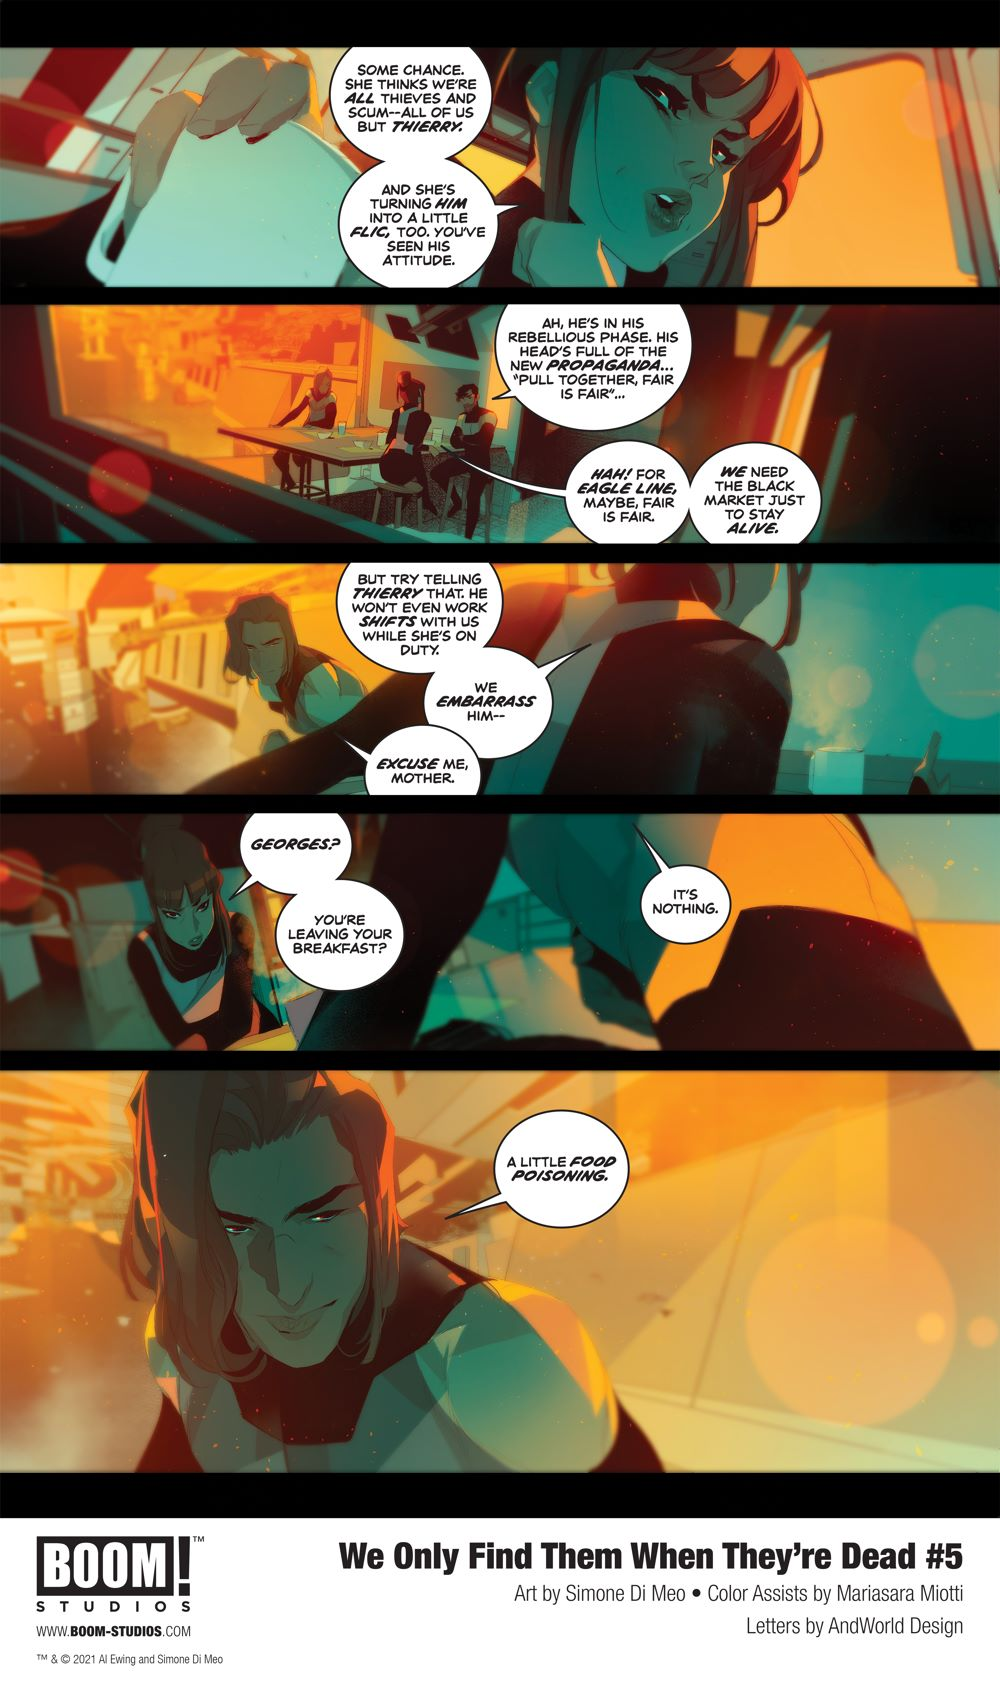 WeOnlyFindThem_005_InteriorArt_003_PROMO First Look at BOOM! Studios' WE ONLY FIND THEM WHEN THEY'RE DEAD #5